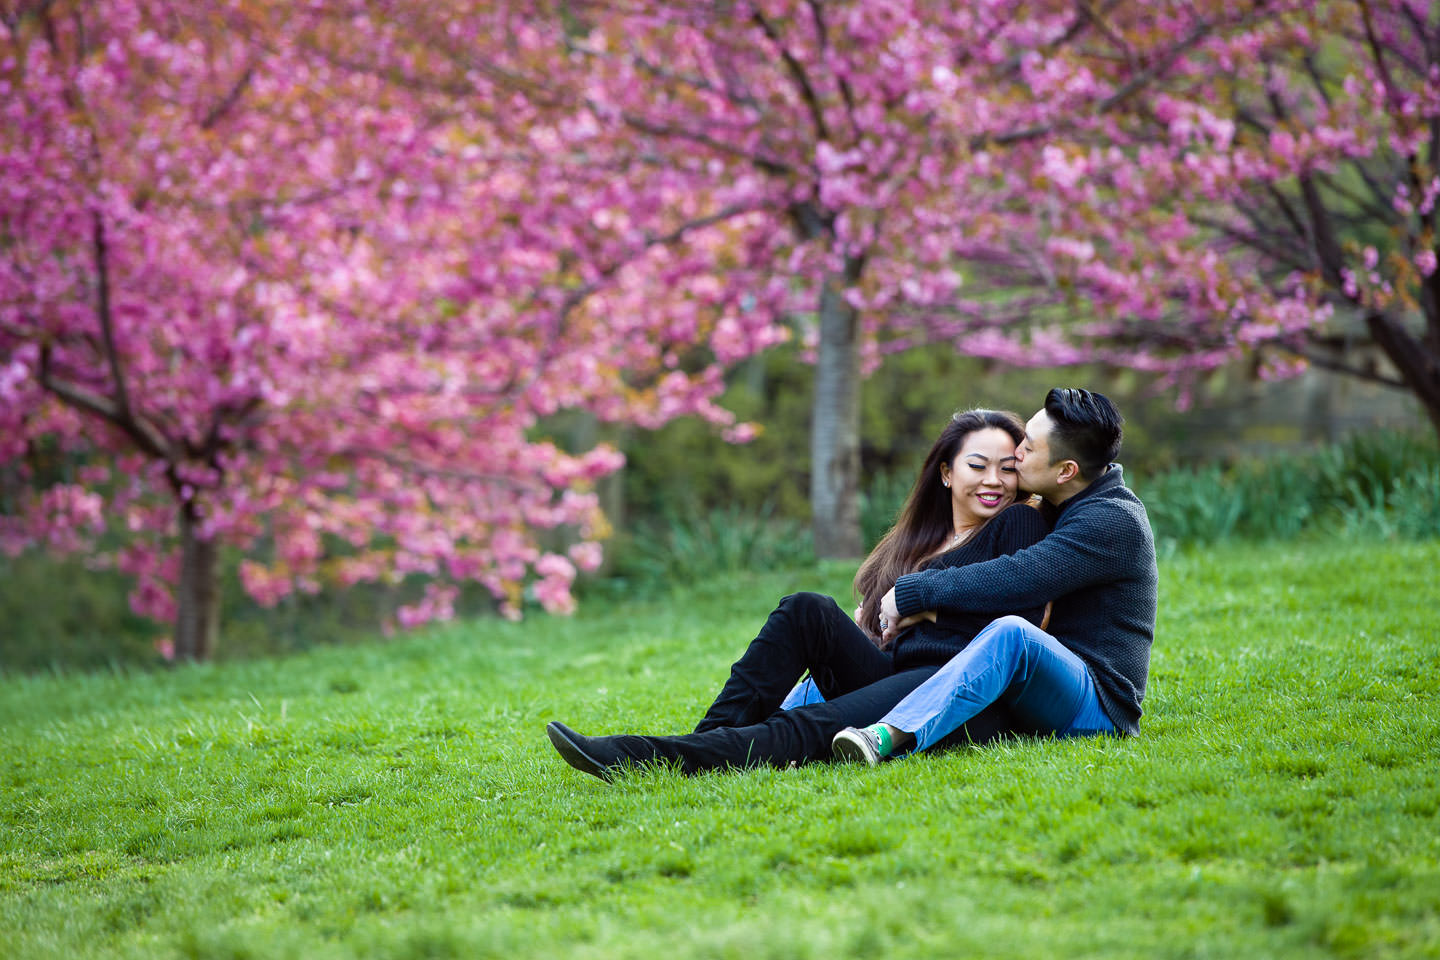 couple sits on grass in central park engagement session during spring with pink blossoming trees in the background